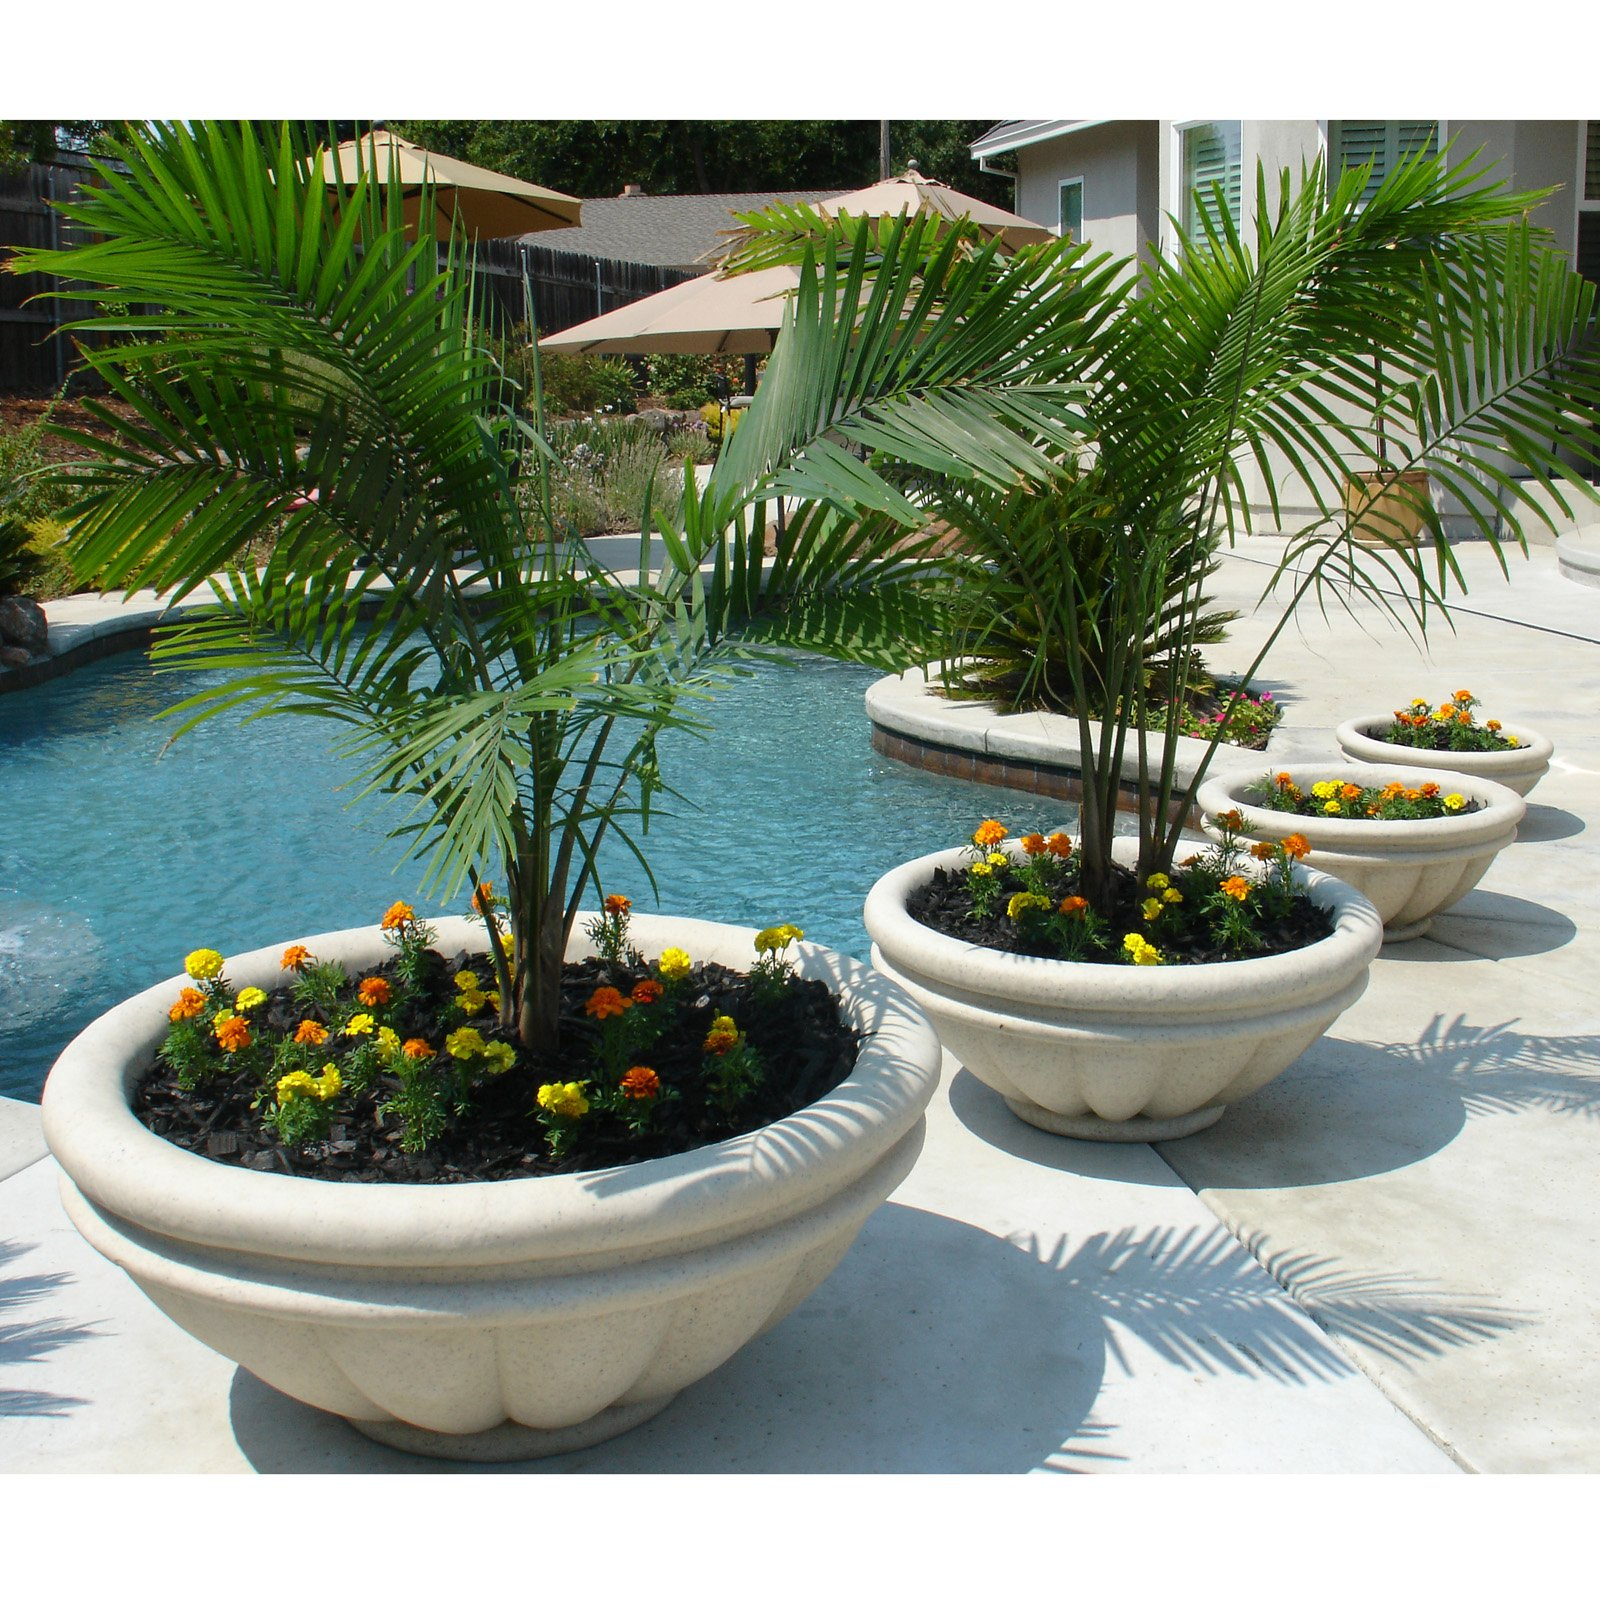 Roof Planters | Fiberglass Planters | Contemporary Flower Pots Large